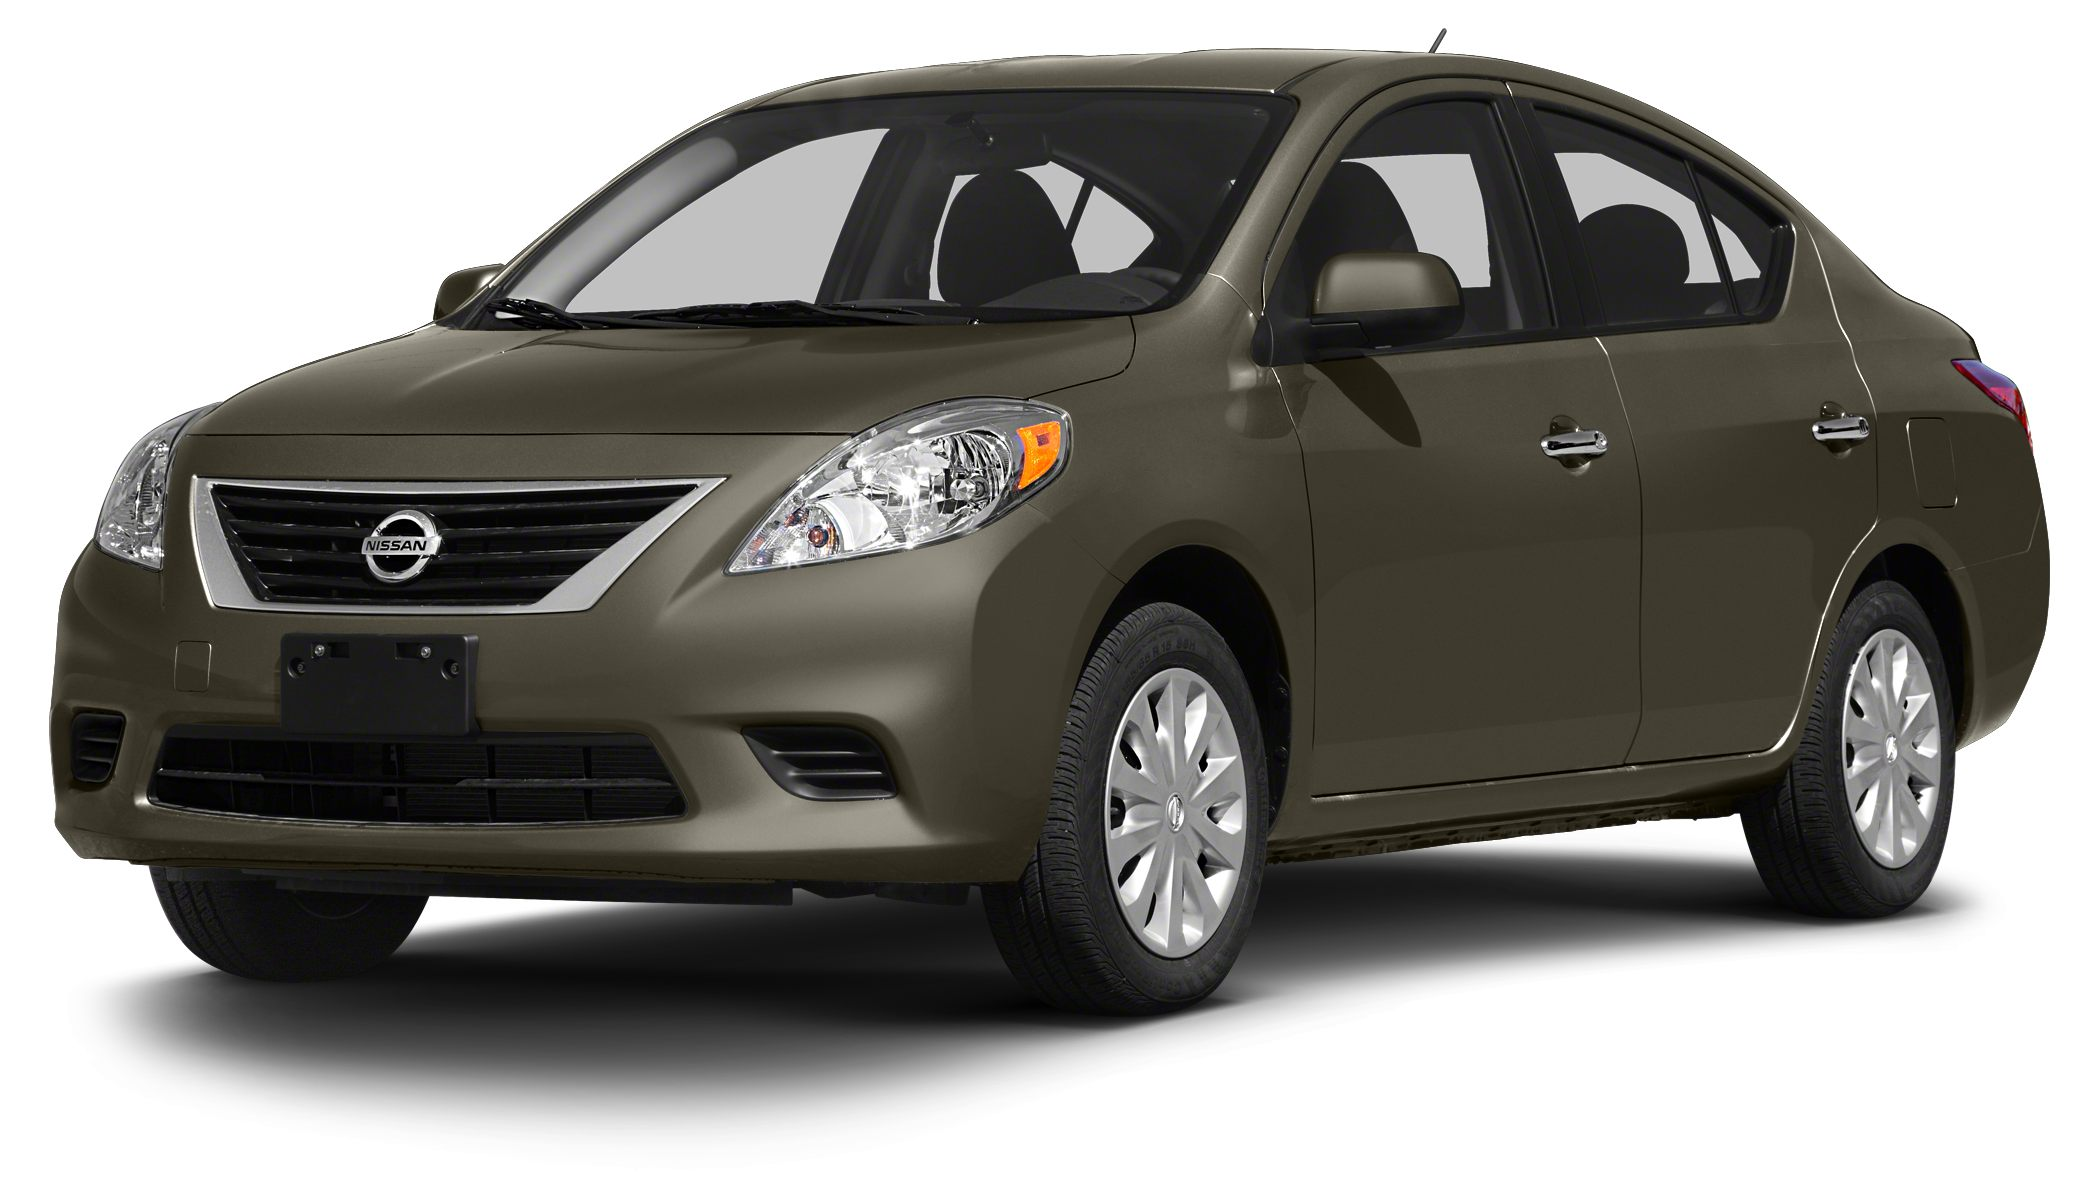 2013 Nissan Versa 16 SV CARFAX 1-Owner ONLY 40647 Miles SV trim EPA 40 MPG Hwy31 MPG City